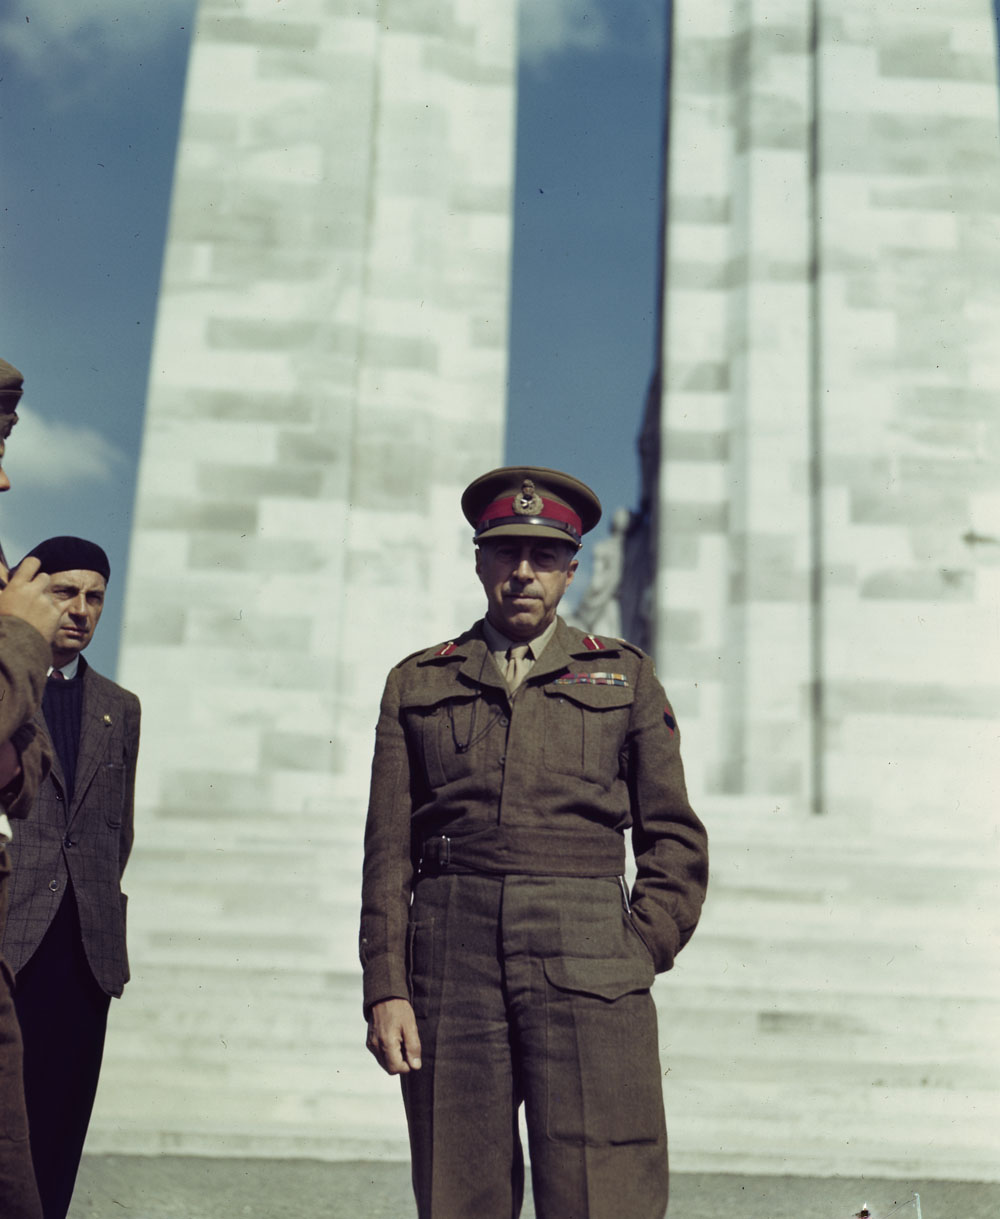 A colour photograph of a man in a military uniform standing in front of a stone war memorial. A man in a tweed coat and beret is partially visible nearby.